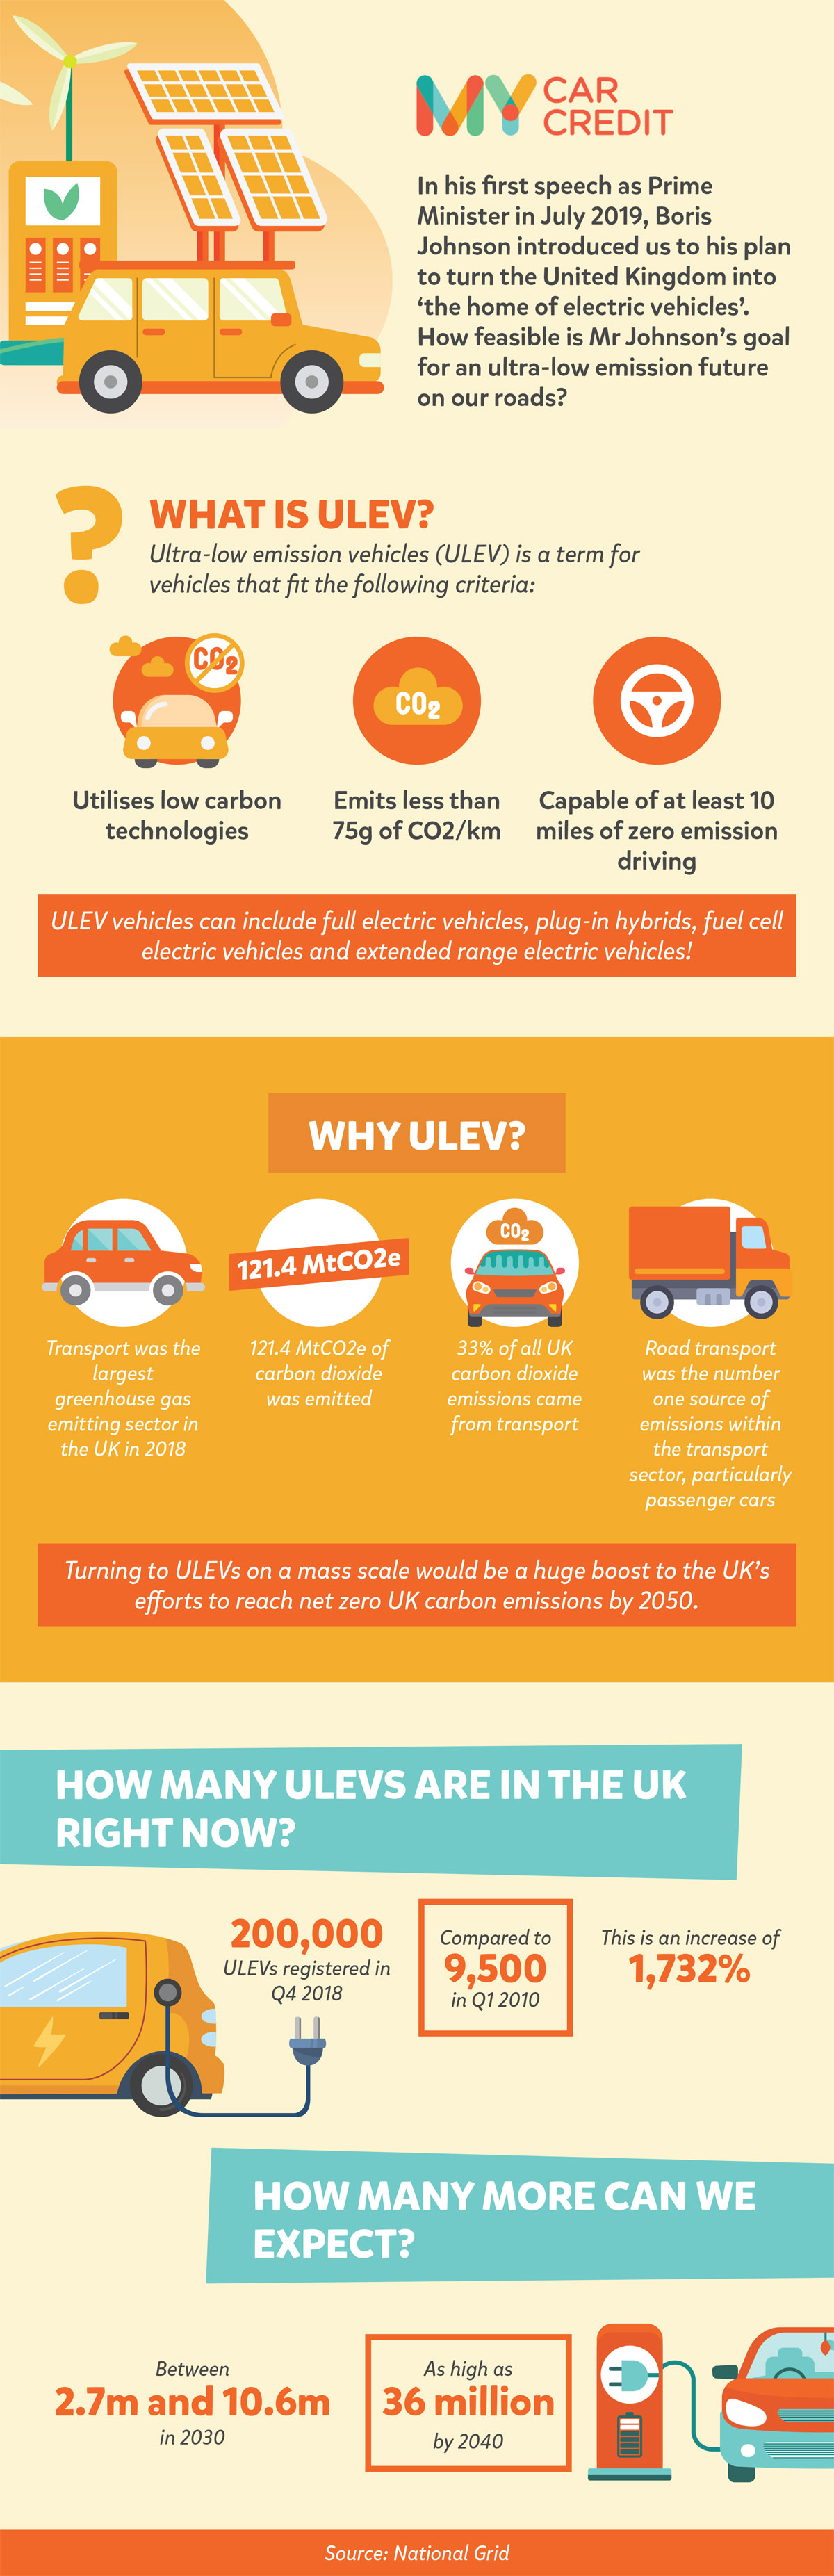 ULEVs (Ultra Low Emission Vehicles) in the UK